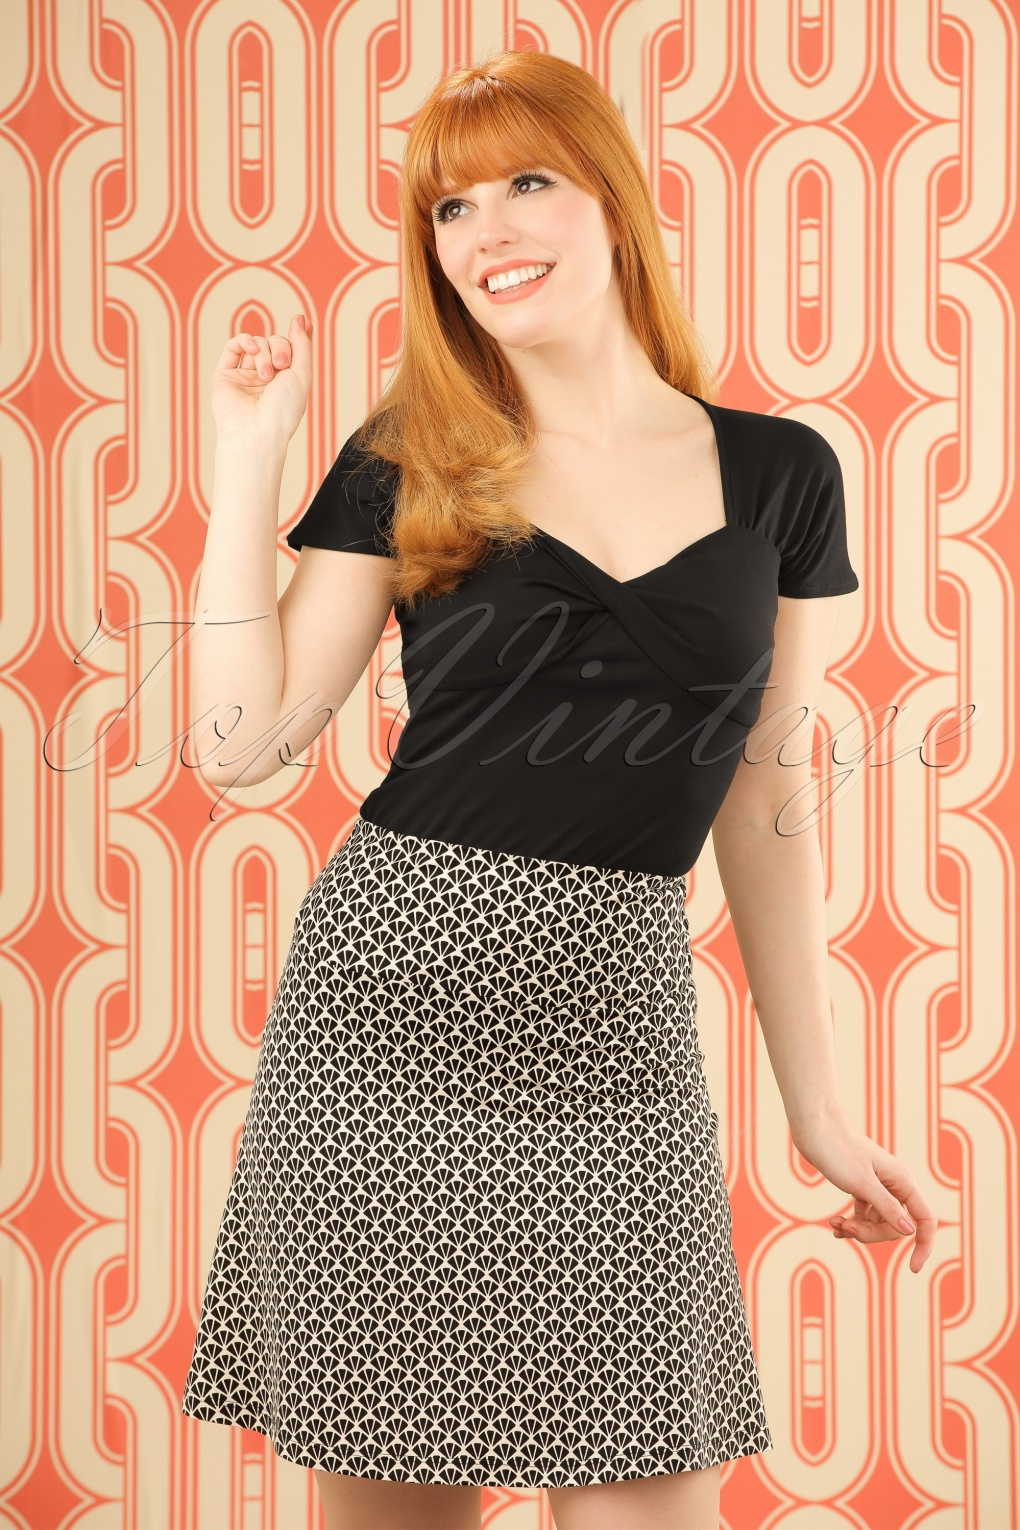 Retro Skirts: Vintage, Pencil, Circle, & Plus Sizes 60s Icono Borderskirt in Cream £50.91 AT vintagedancer.com